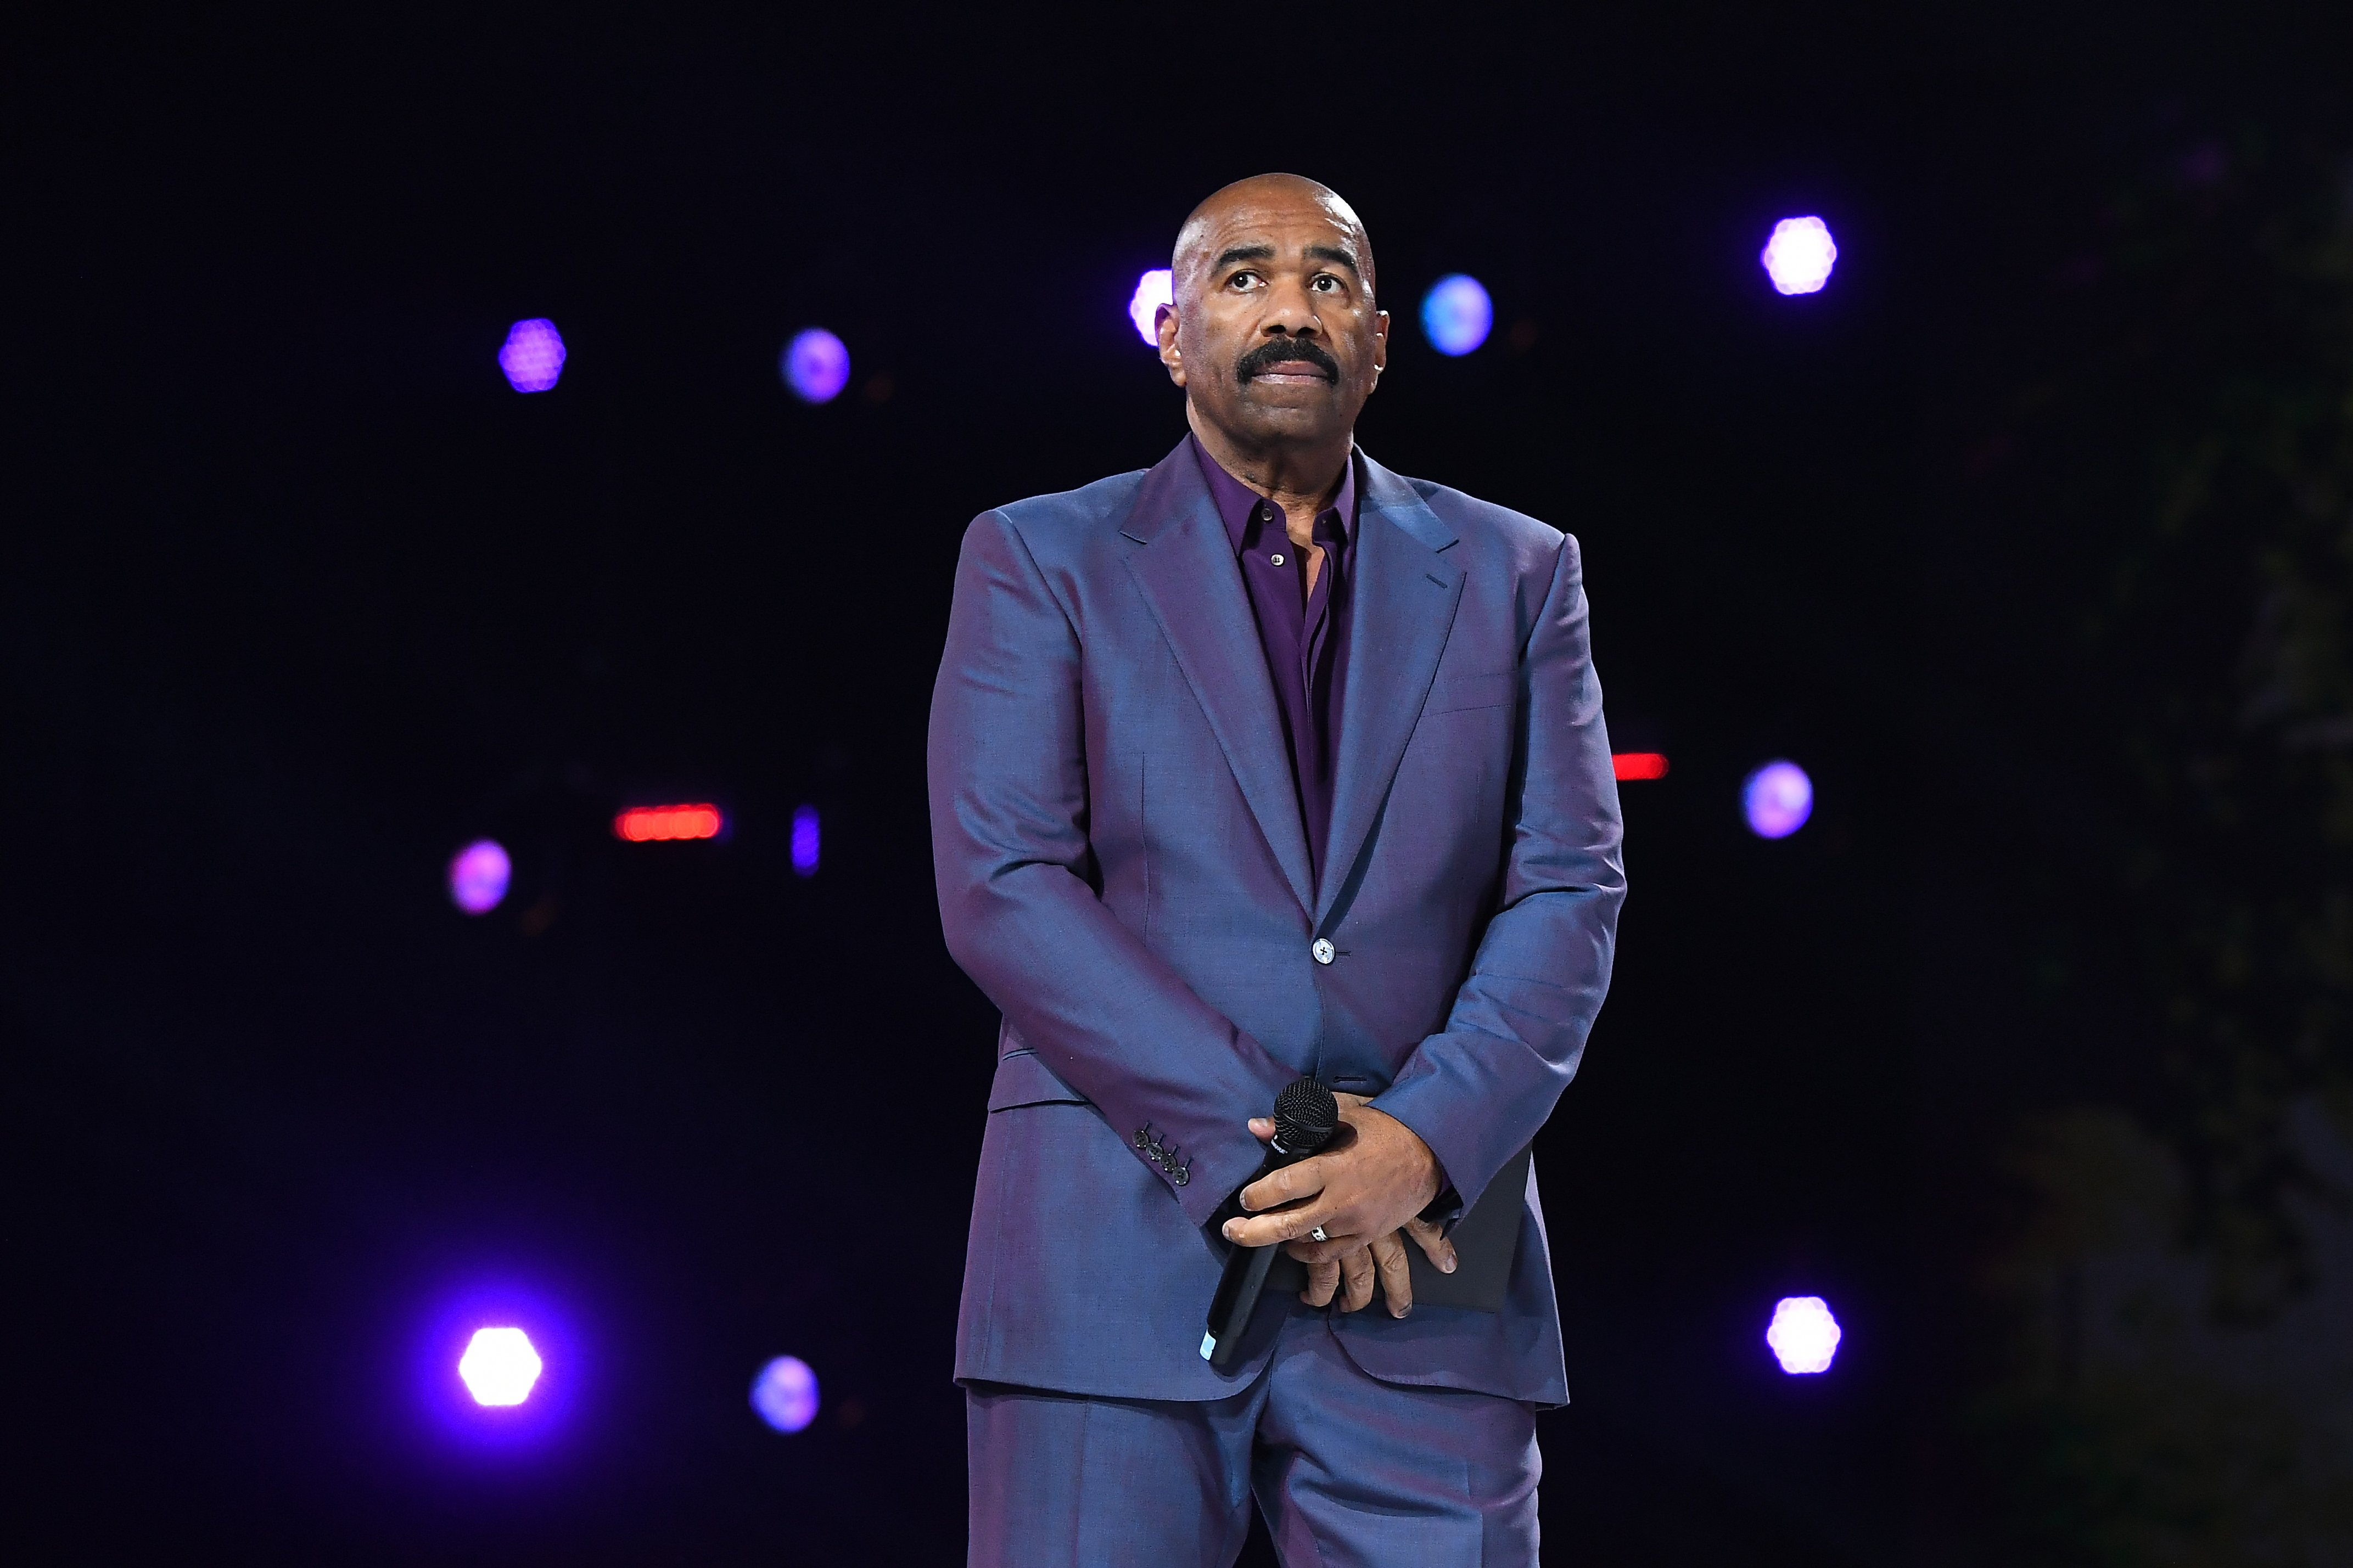 Steve Harvey onstage during the Beloved Benefit on March 21, 2019, in Atlanta, Georgia. | Source: Getty Images.